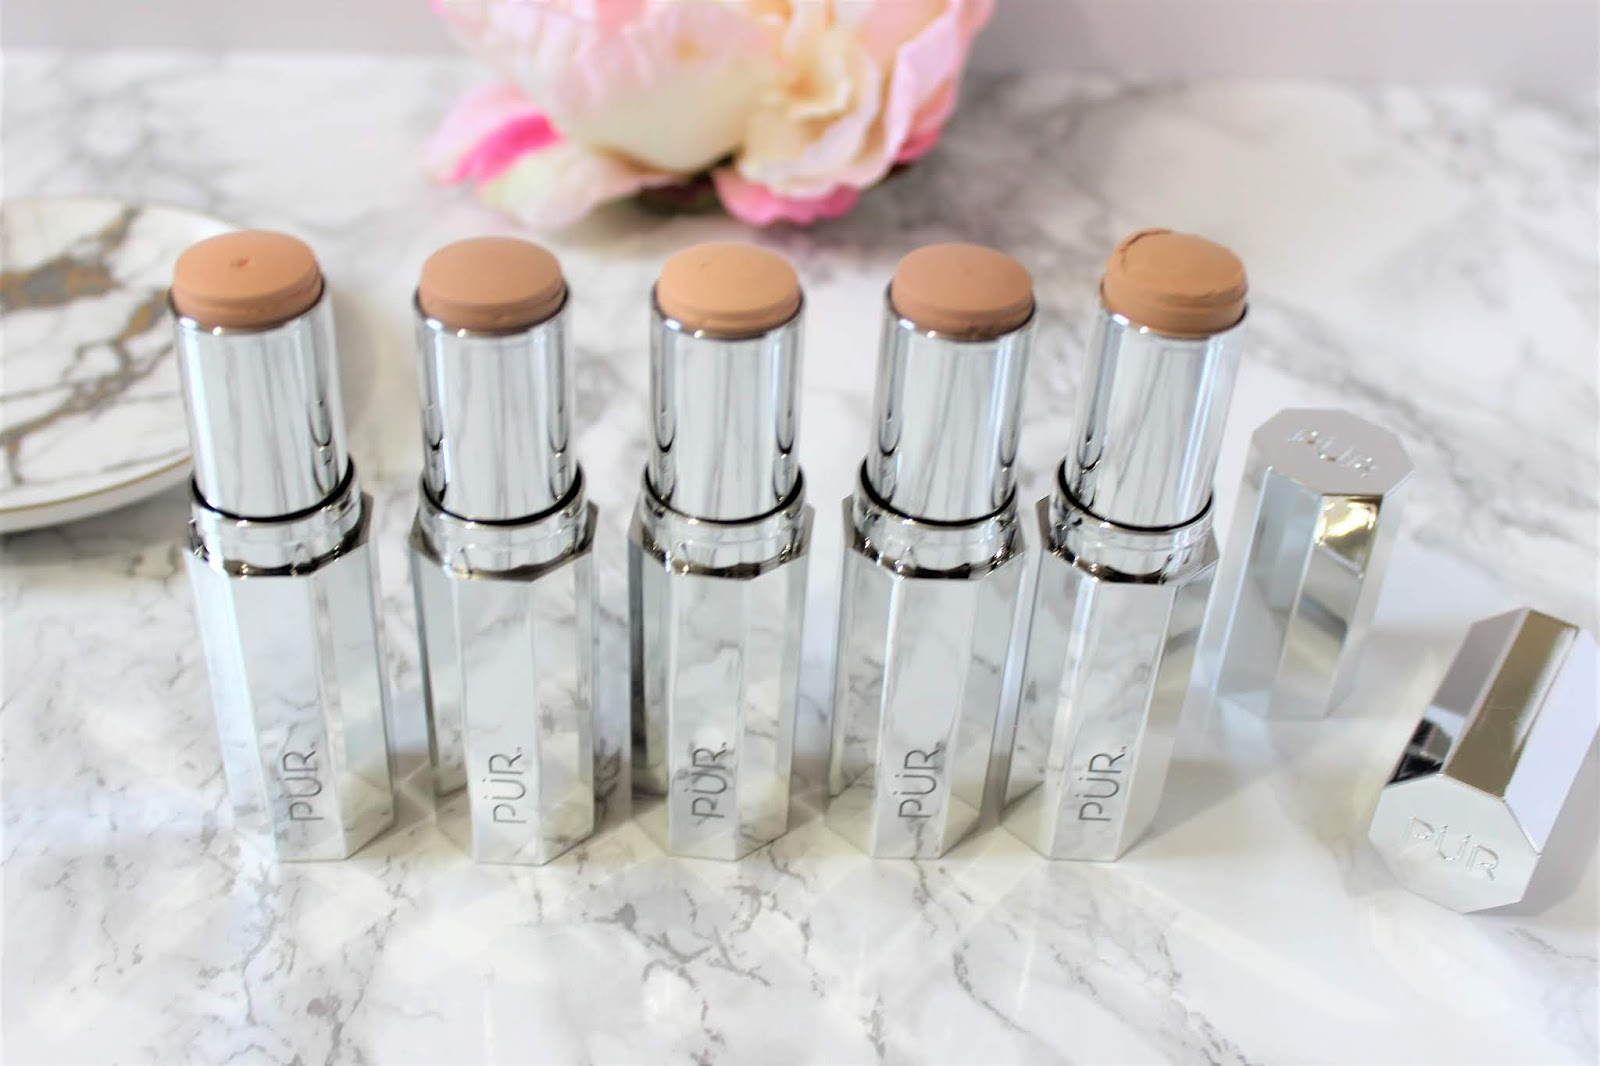 Pur Cosmetics 4 in 1 Foundation Stick